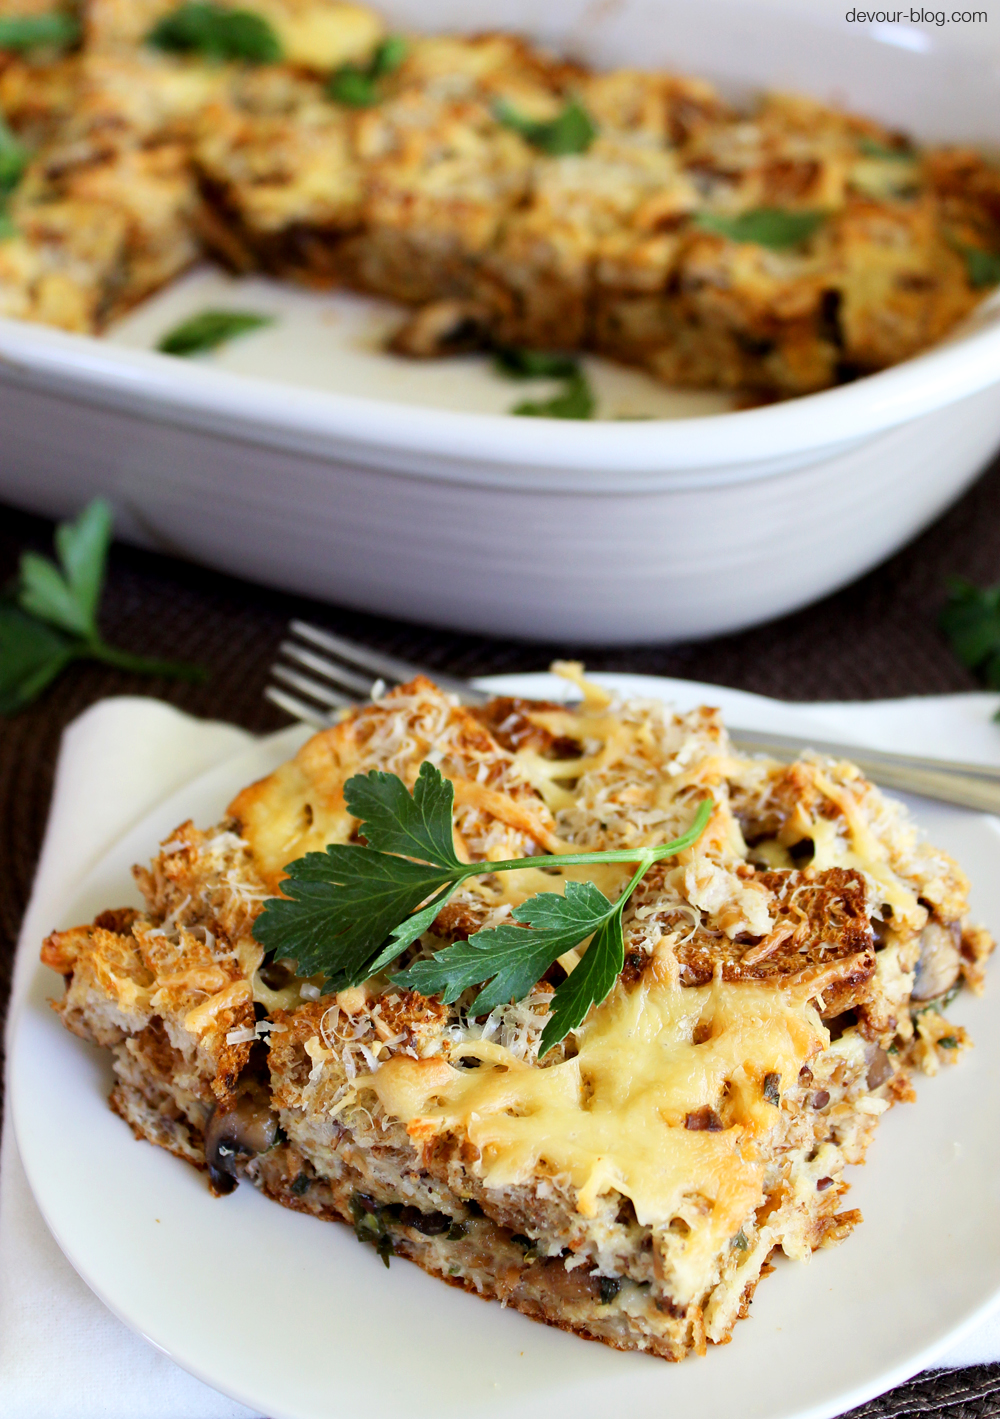 Mushroom Fontina Bread Pudding with fresh herbs and parmesan. devour-blog.com